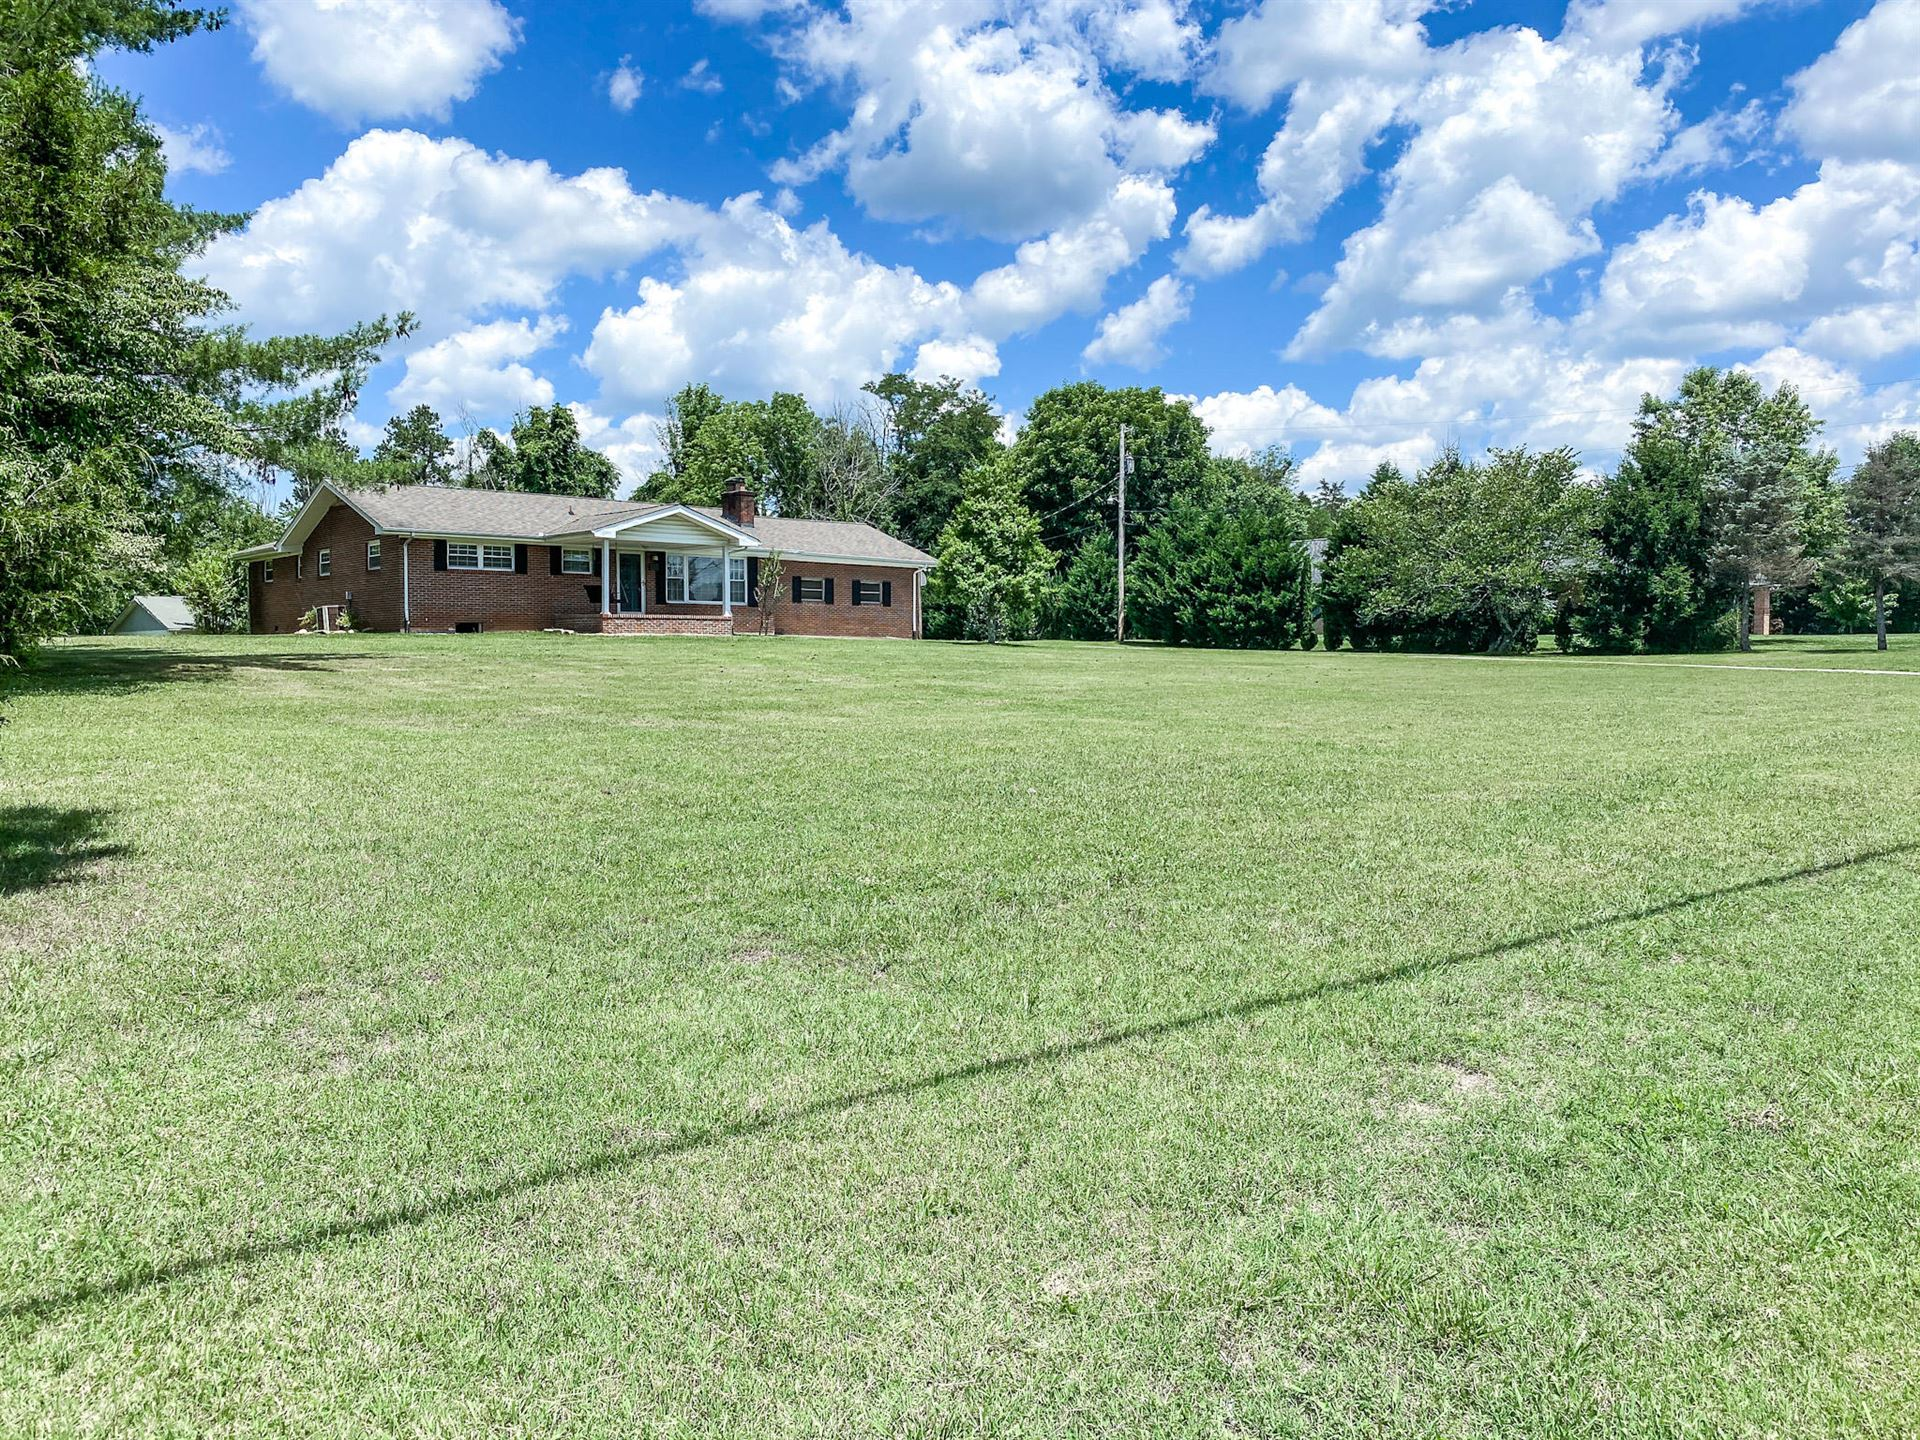 Photo of 5307 E Emory Rd, Knoxville, TN 37938 (MLS # 1122176)